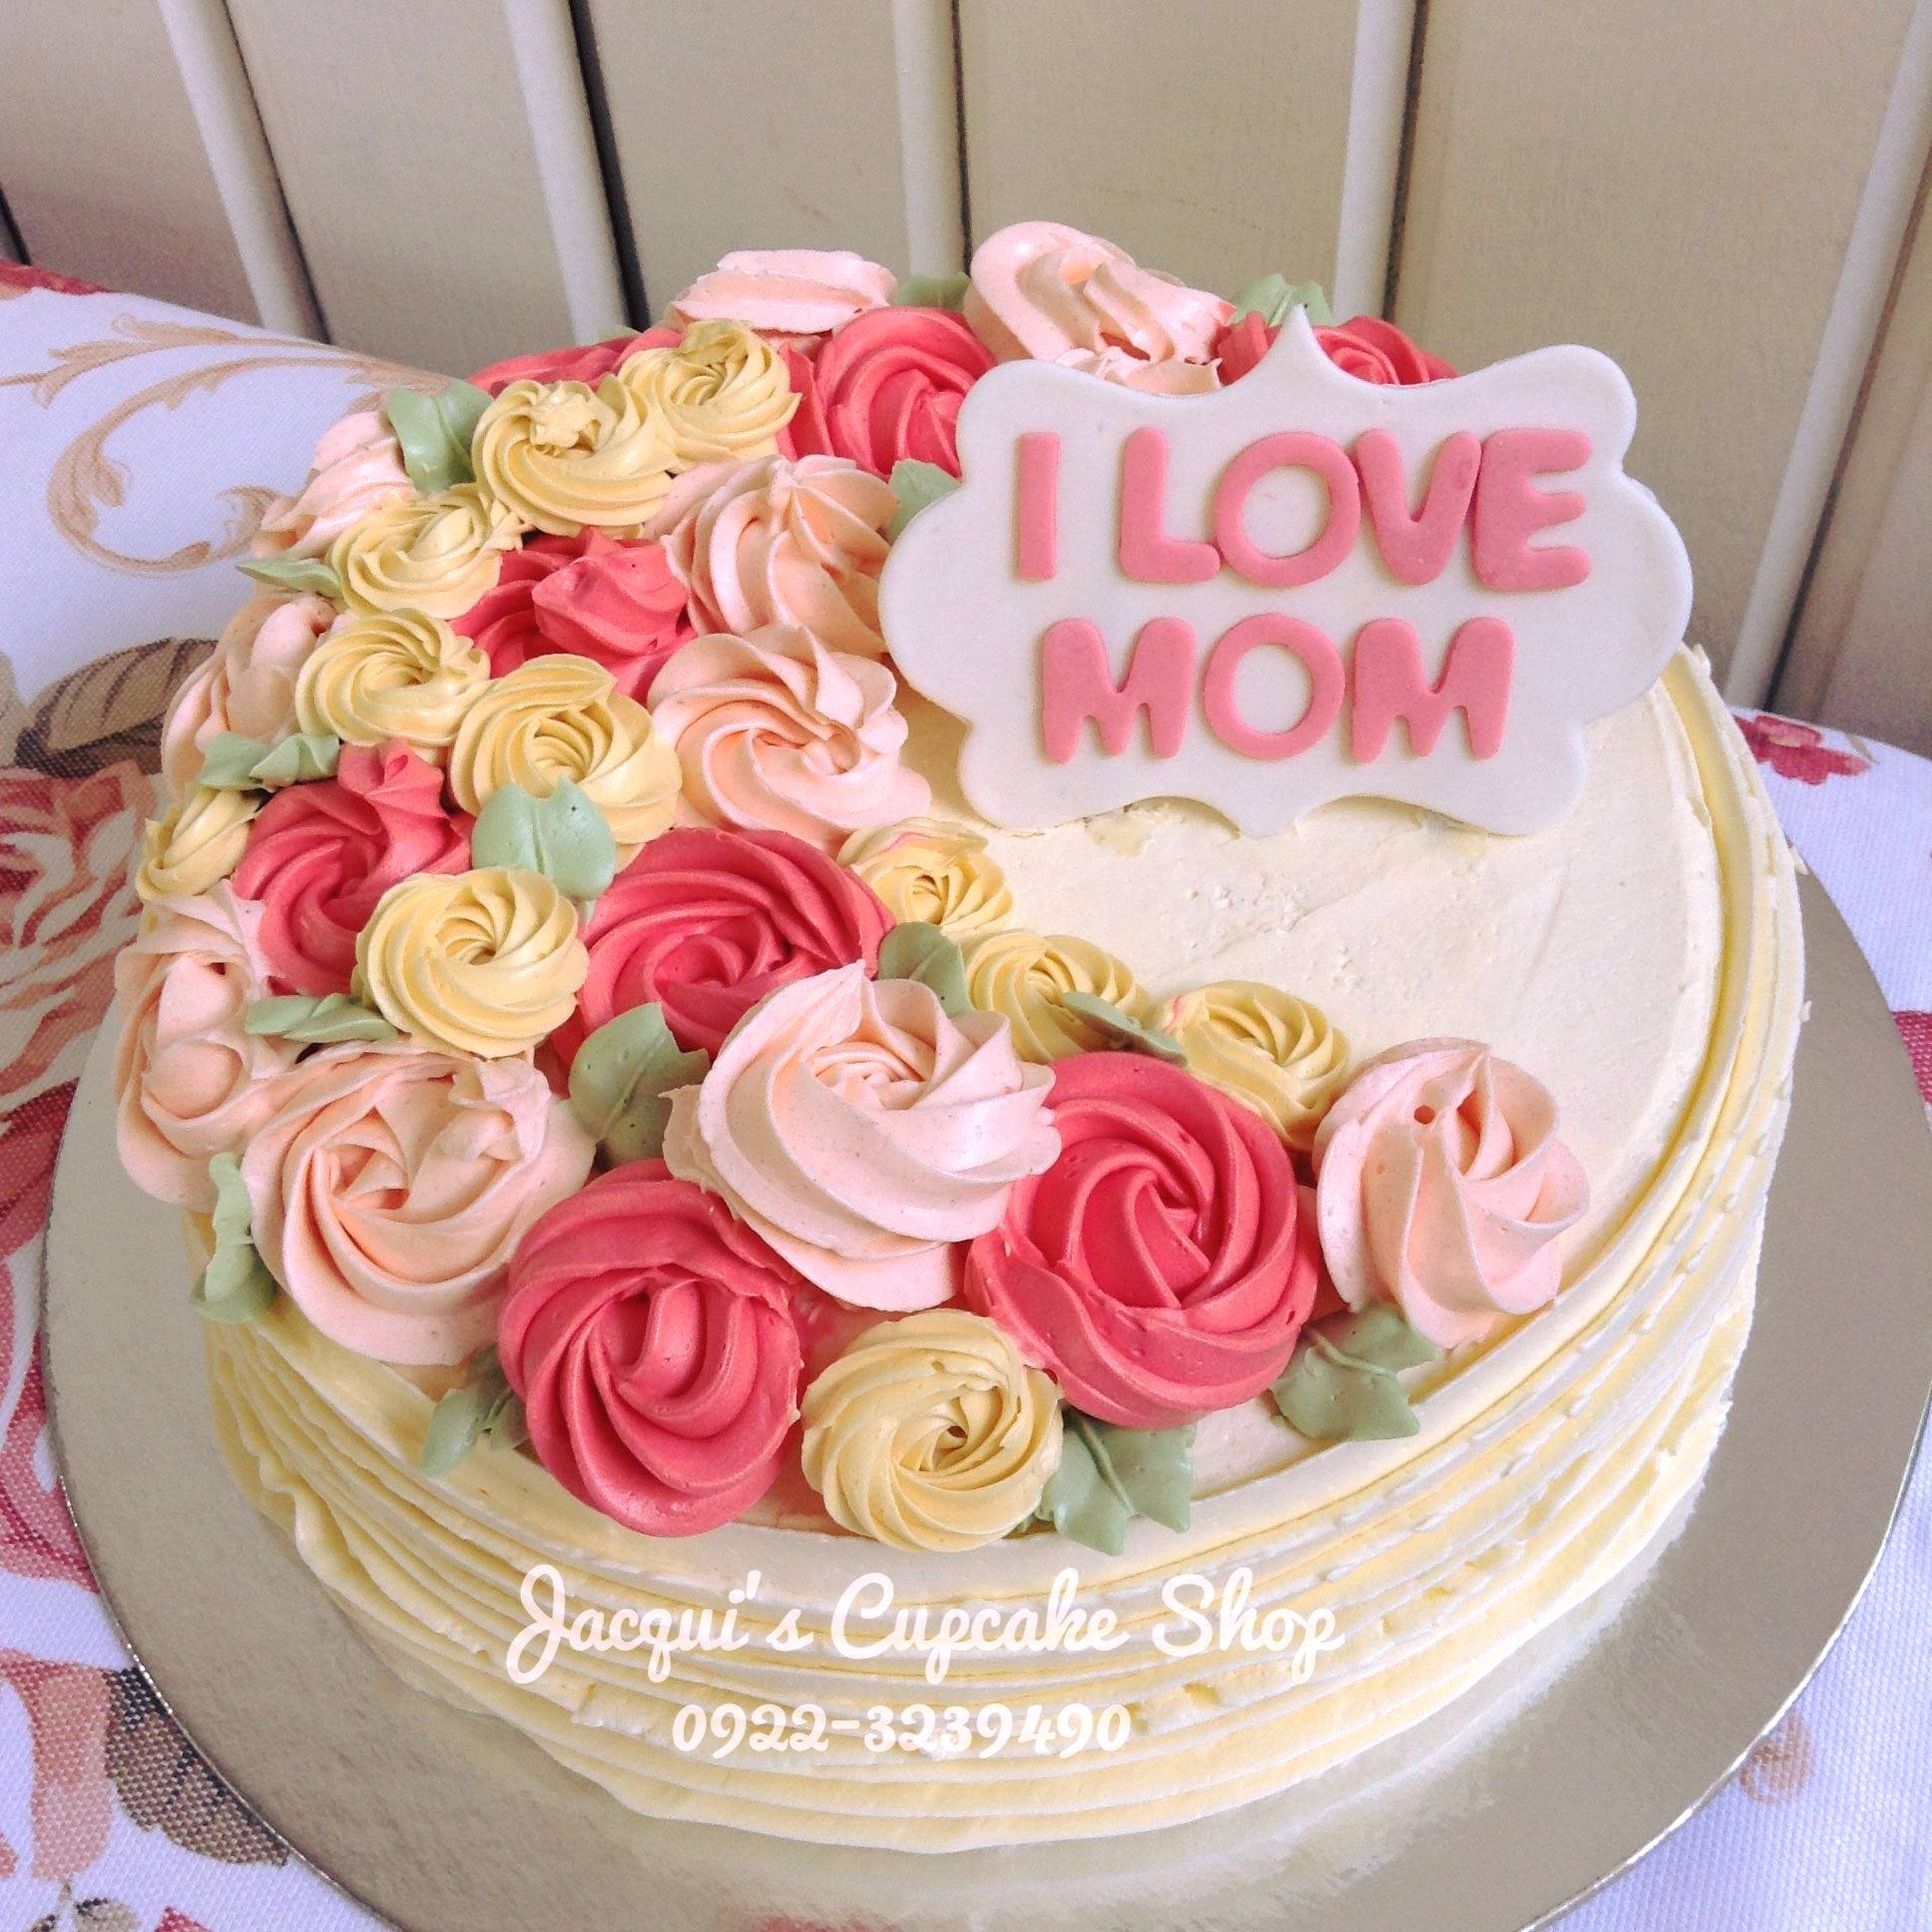 Jacqui's Customized cake for mother's day event